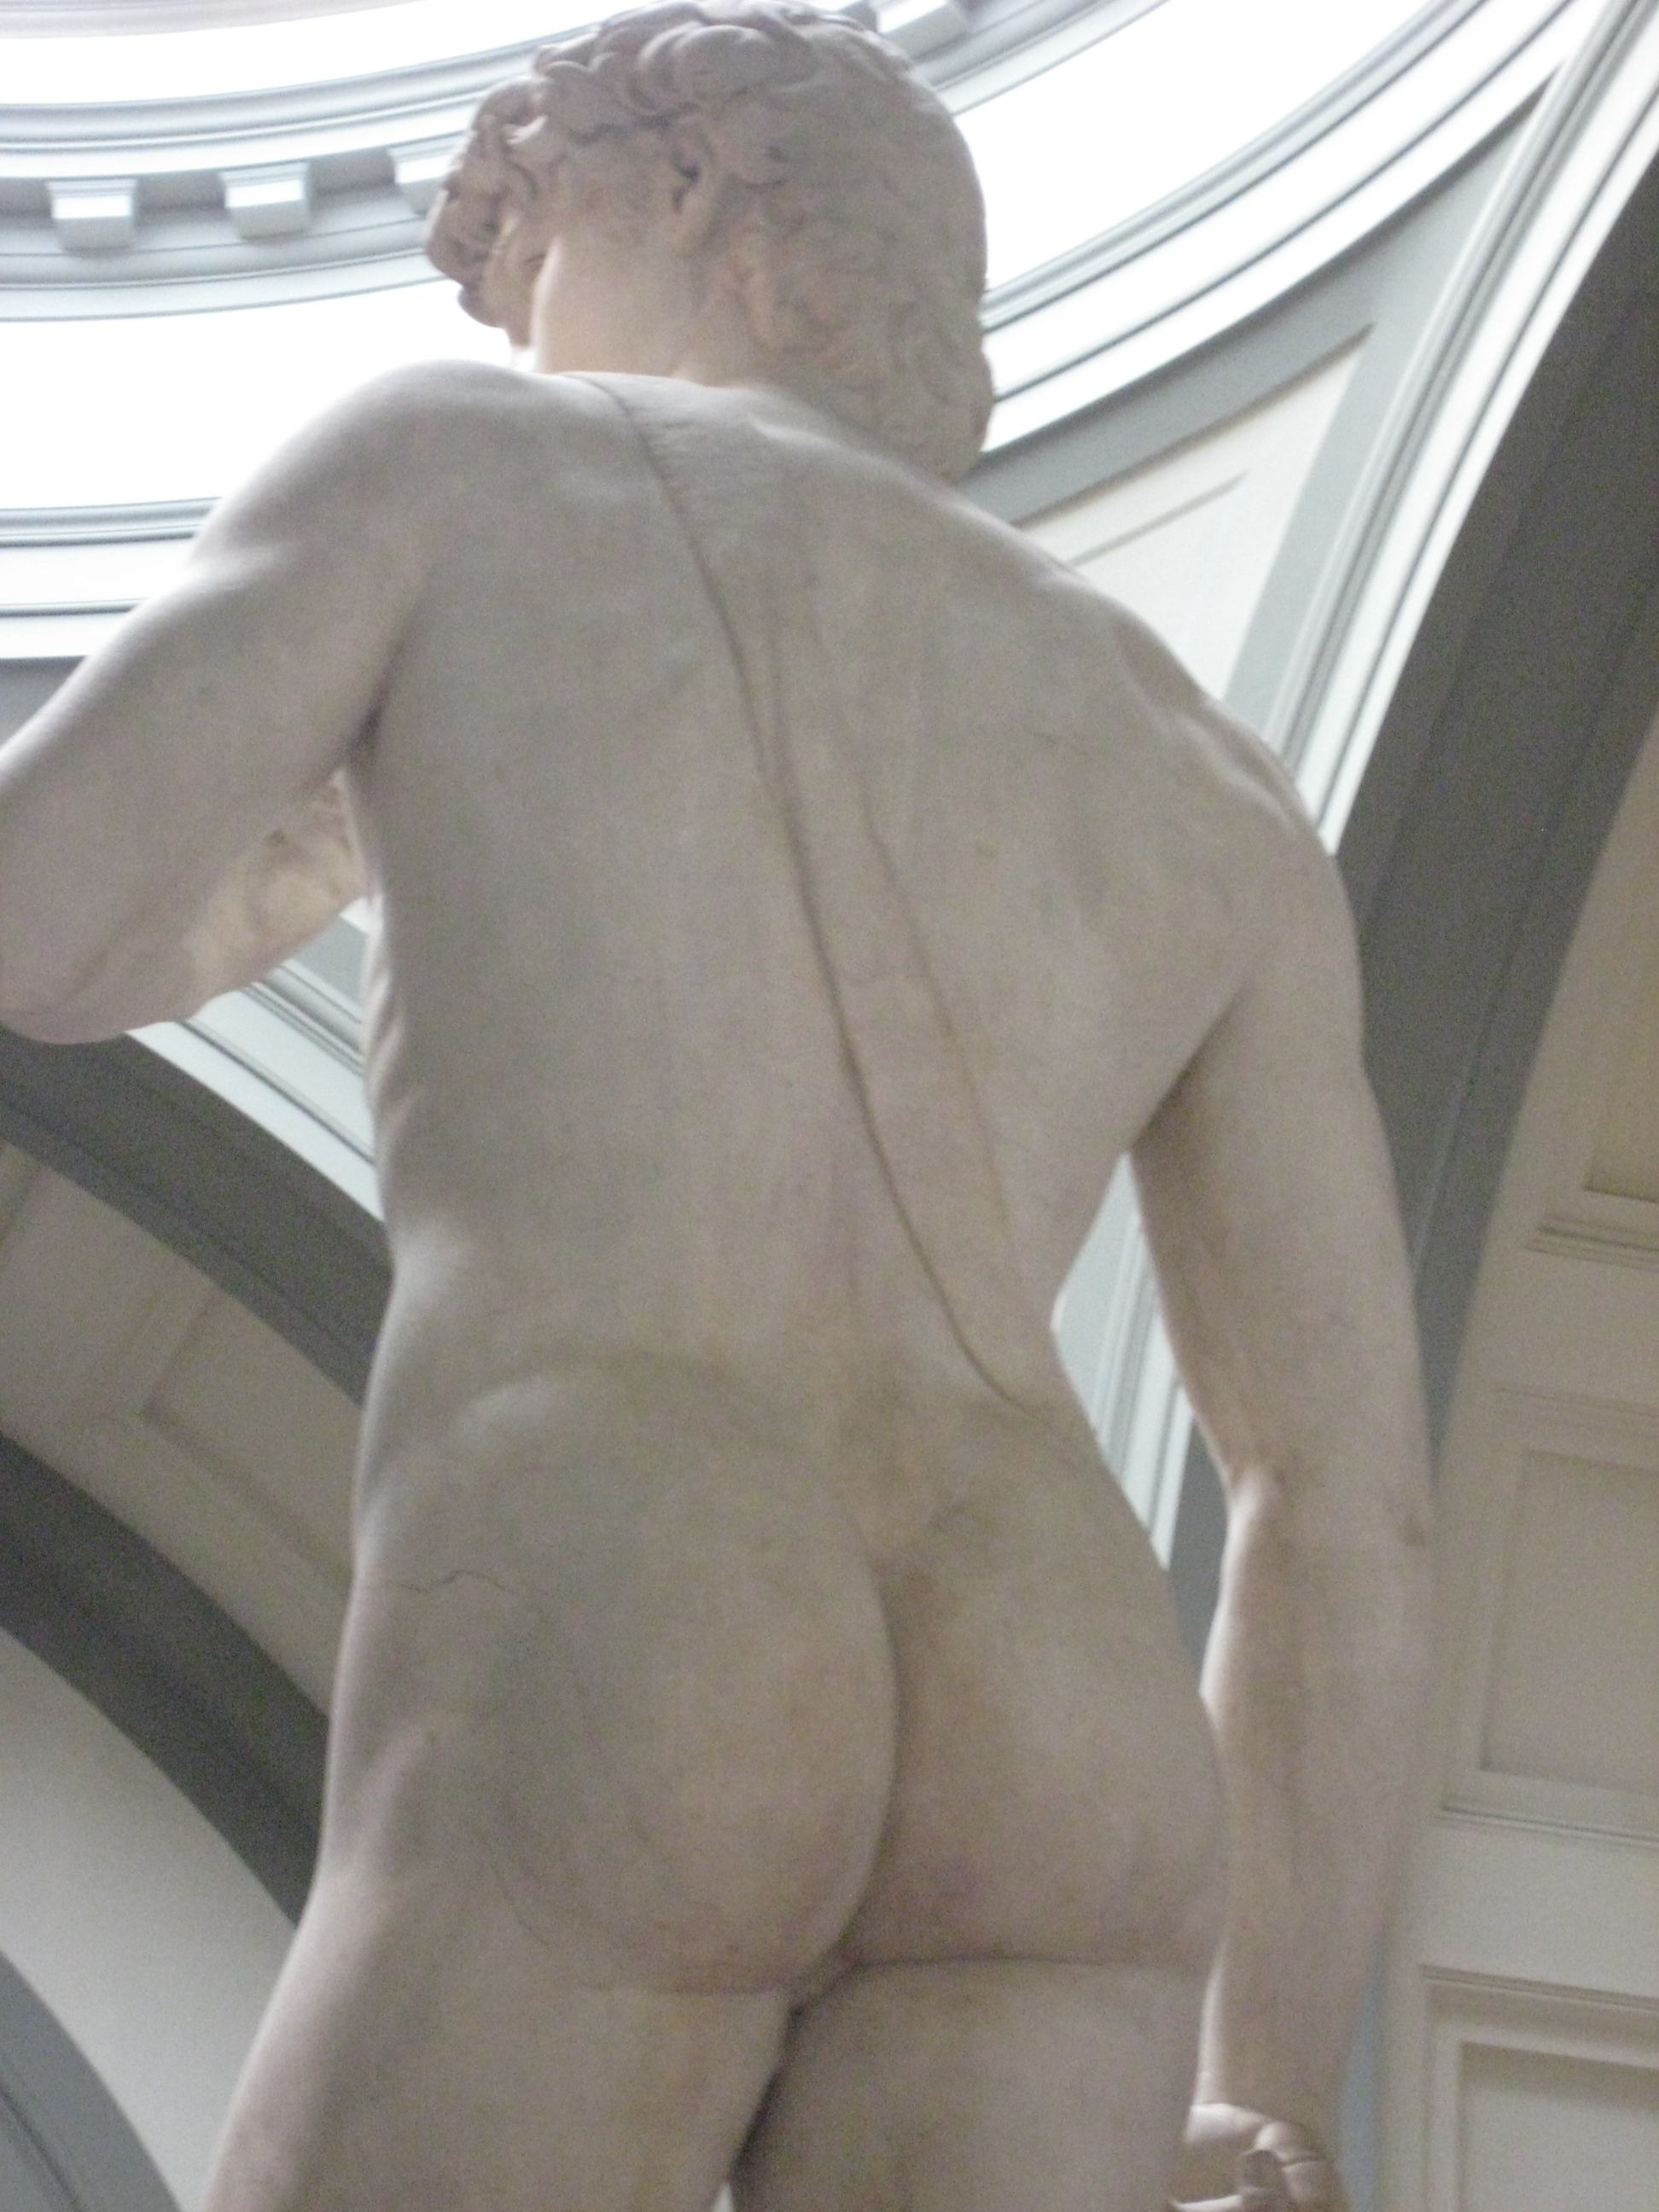 David by Michelangelo from behind - Quelle: WikiCommons, Details at end of article